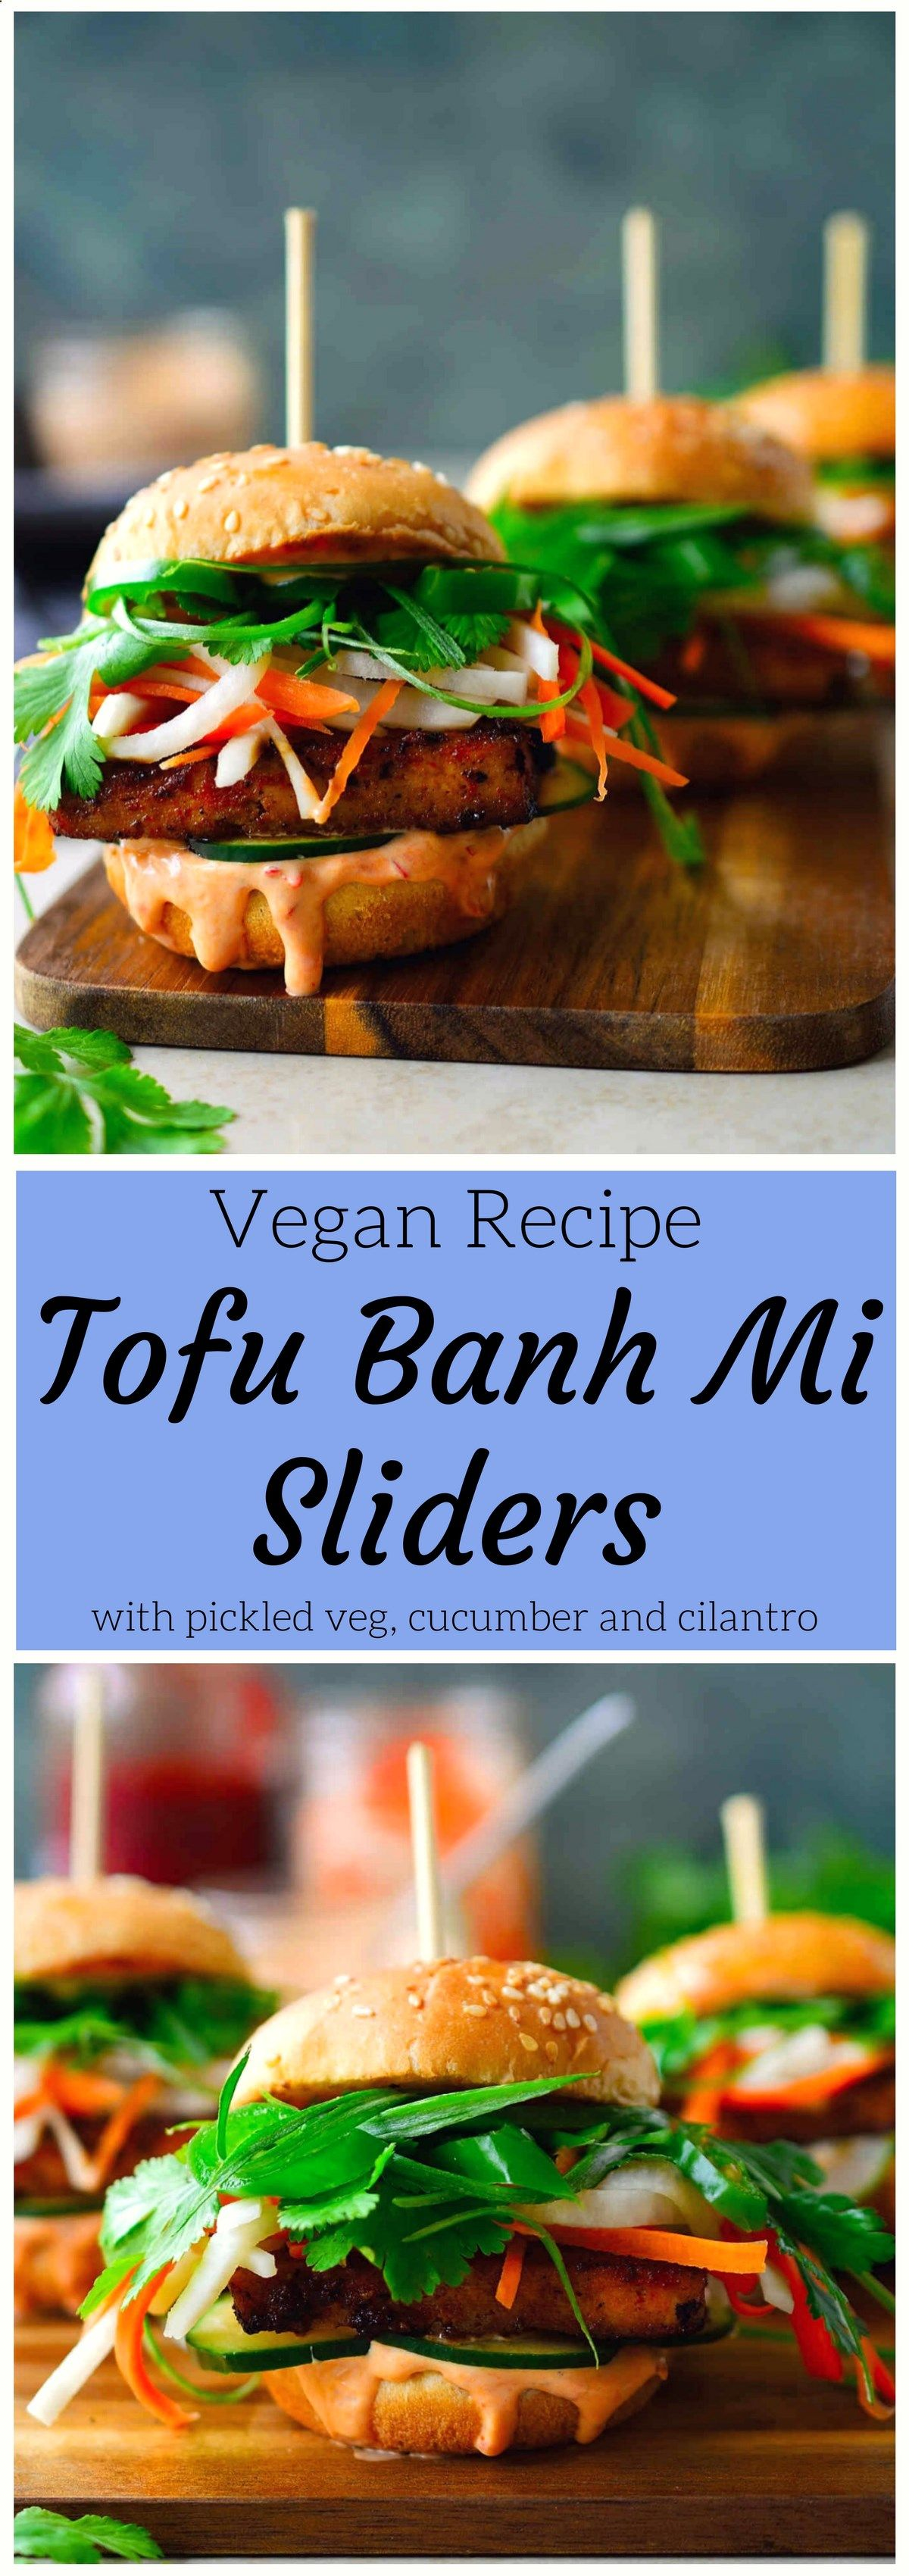 These Tofu Banh Mi Vegan Sliders Are Packed With Flavour